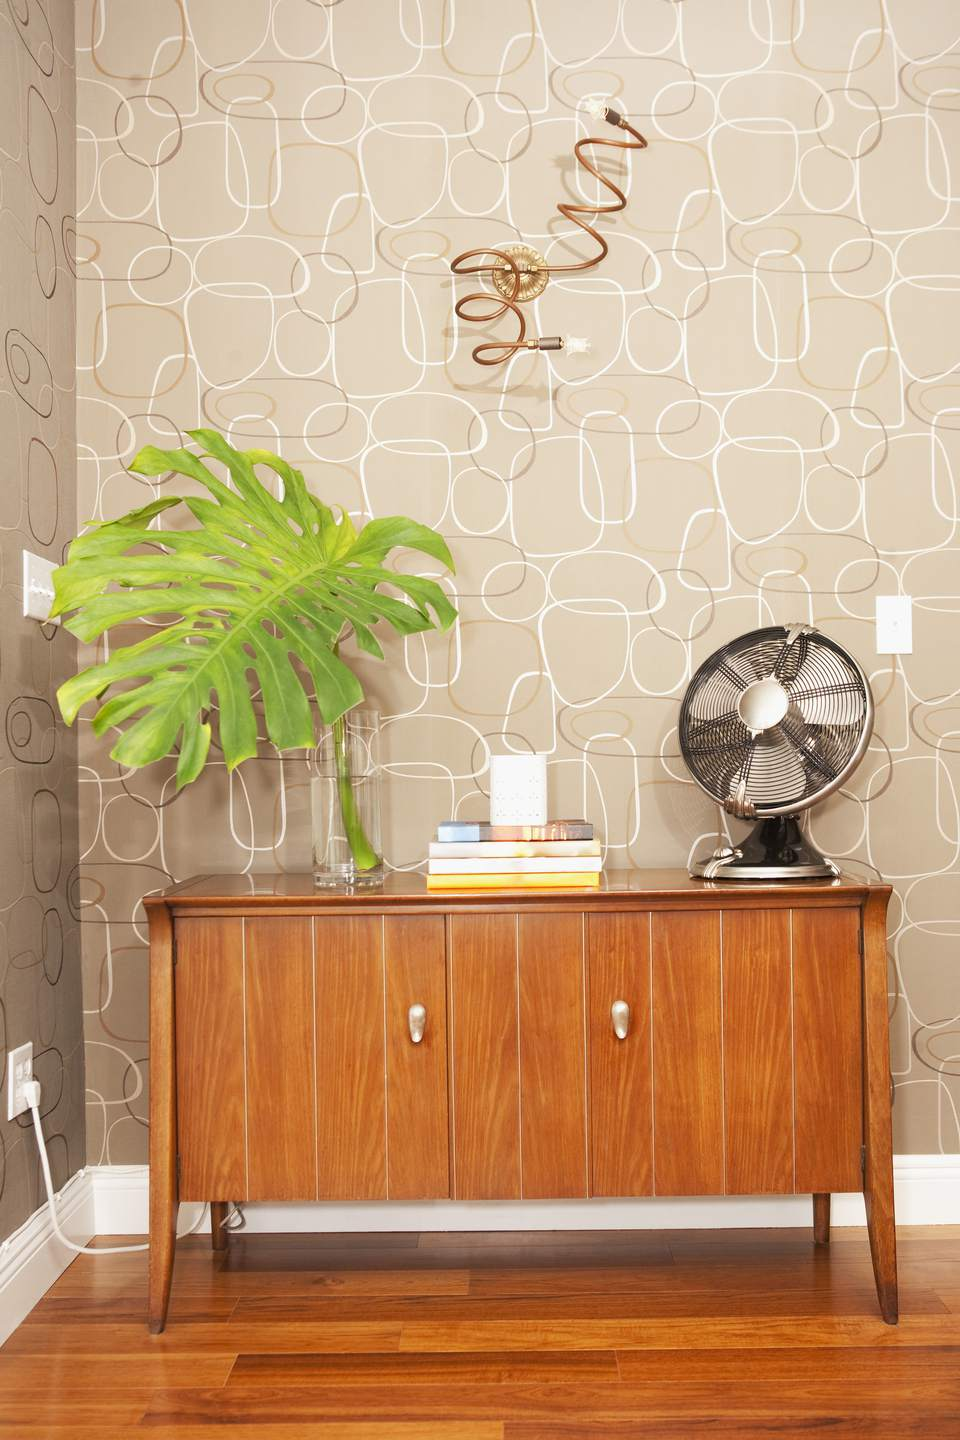 Electric fan with books on a sideboard